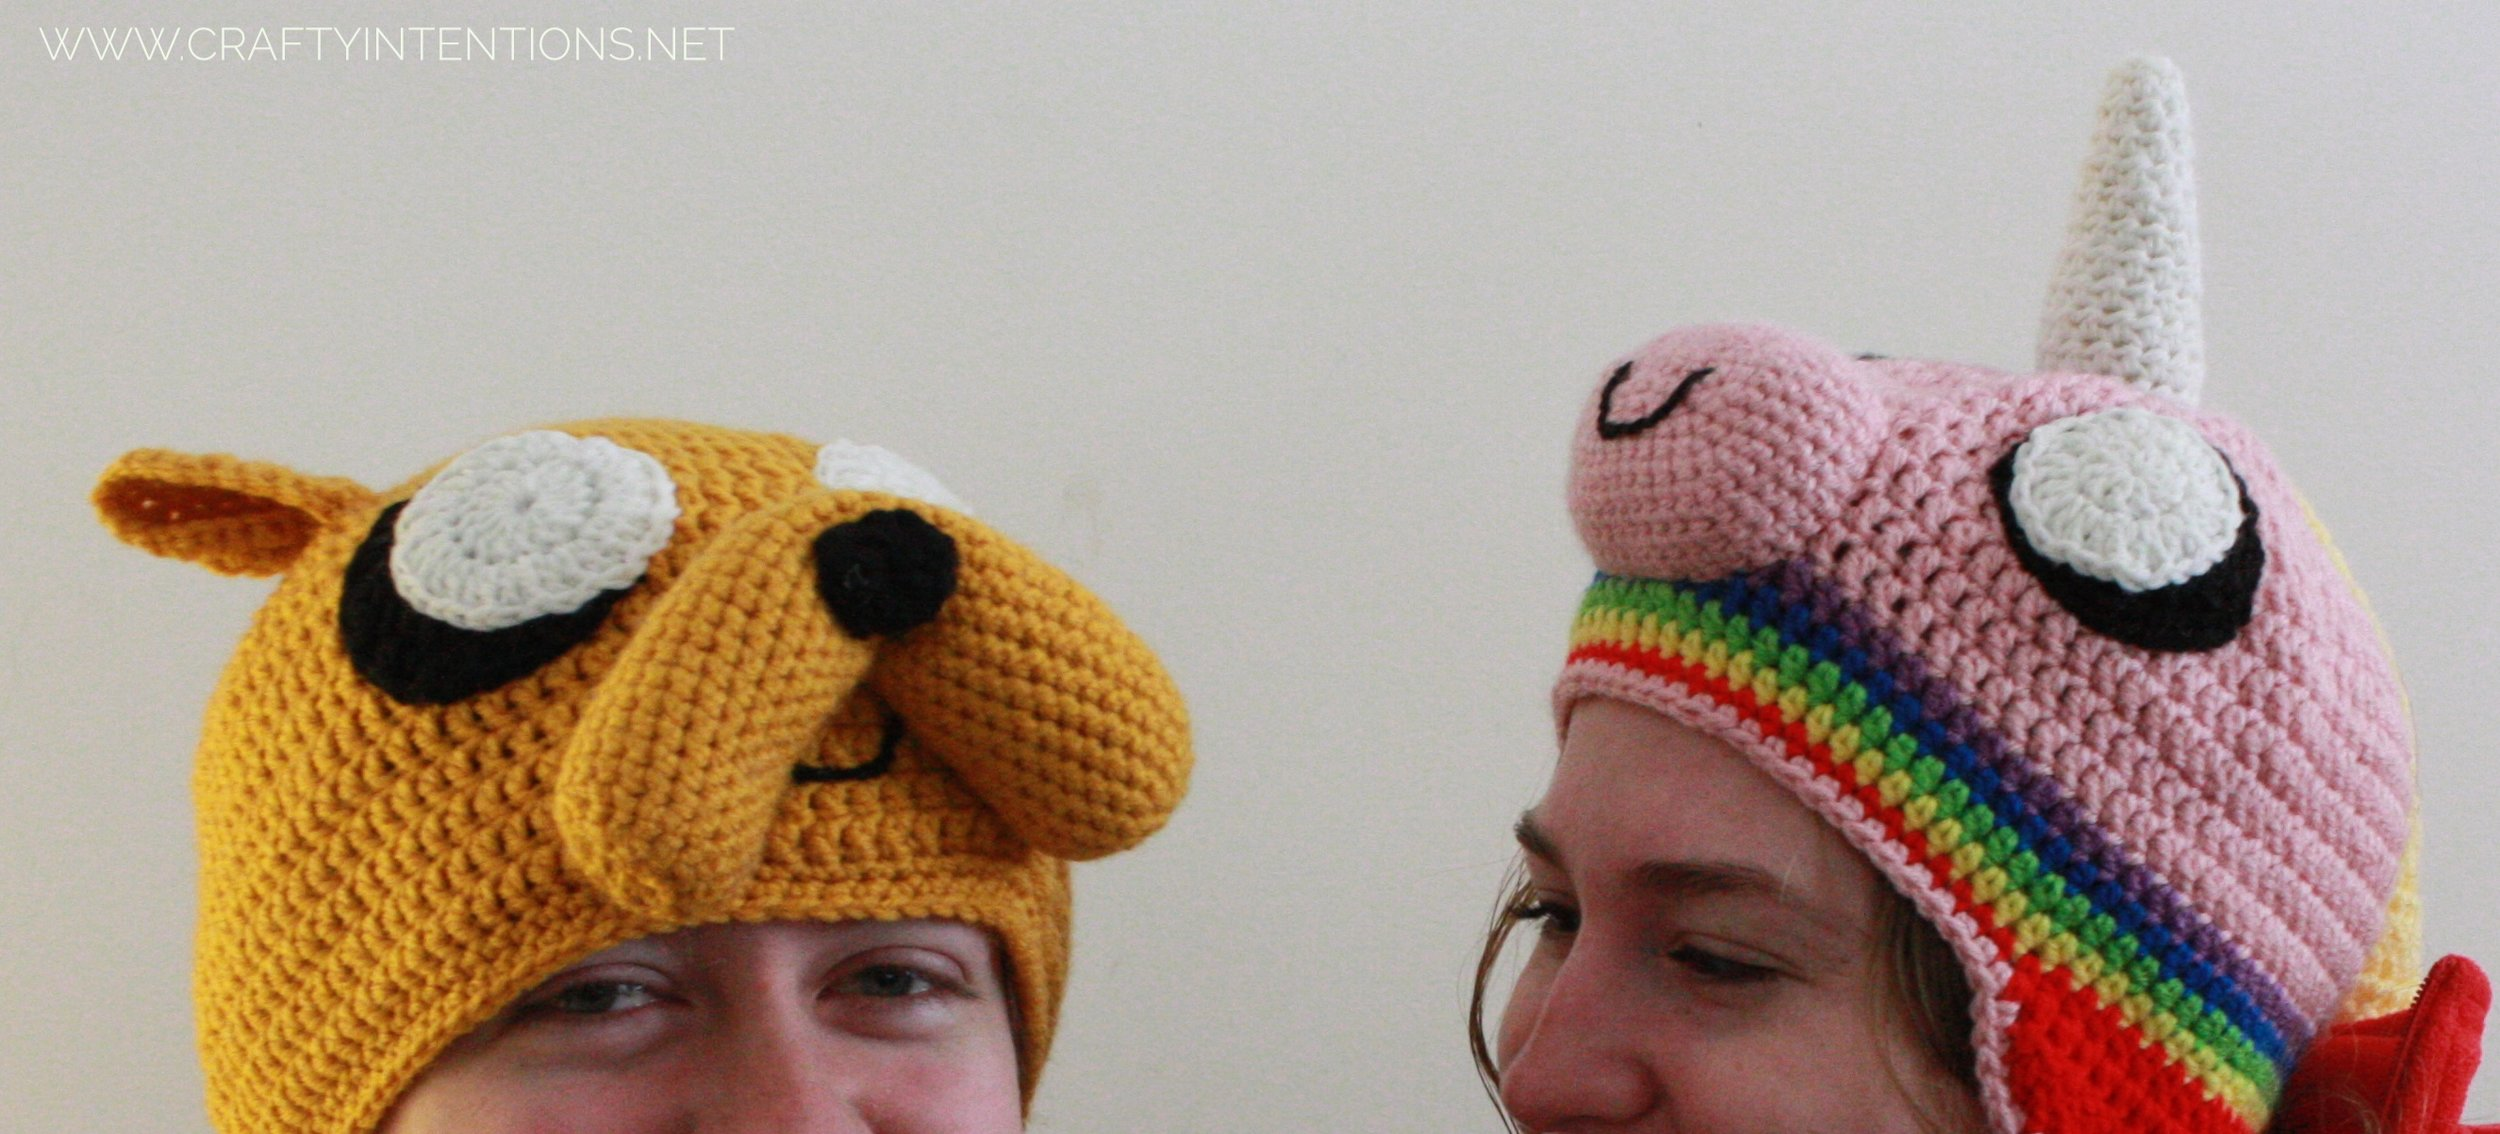 2013 Jake the Dog and Lady Rainicorn Crochet Hats-02.jpeg